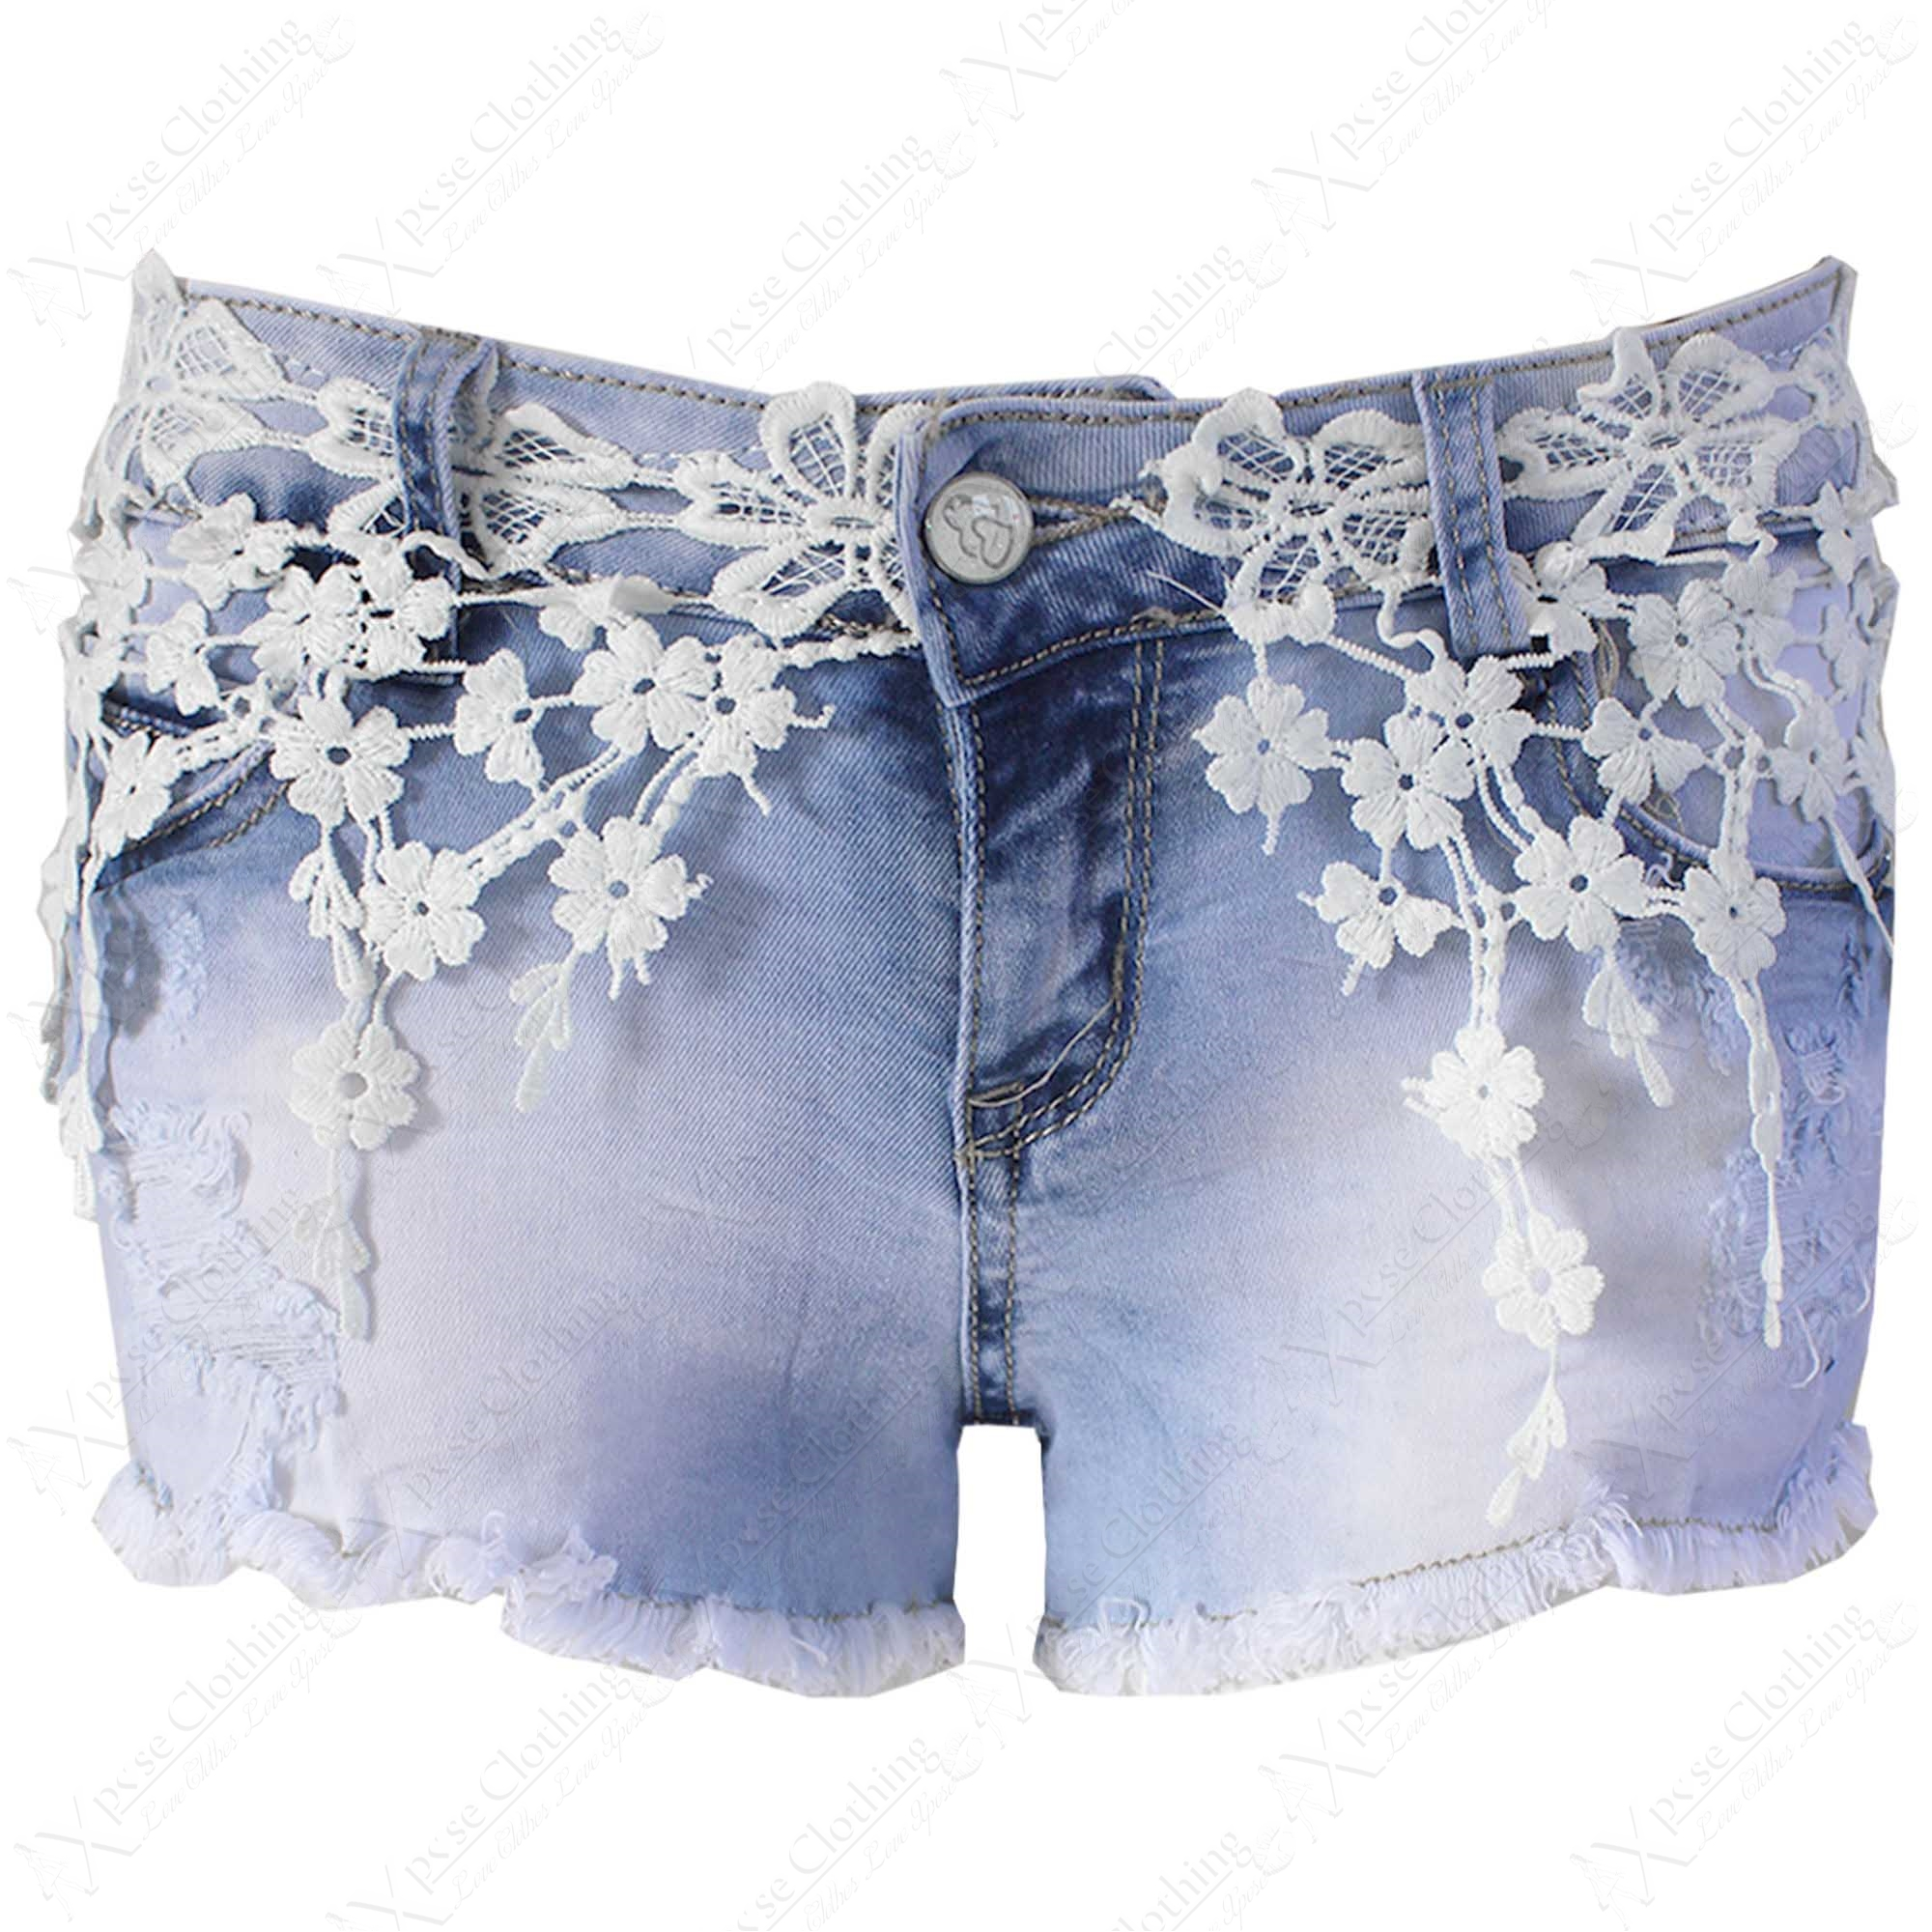 new womens denim crochet lace frayed hot pants ladies. Black Bedroom Furniture Sets. Home Design Ideas